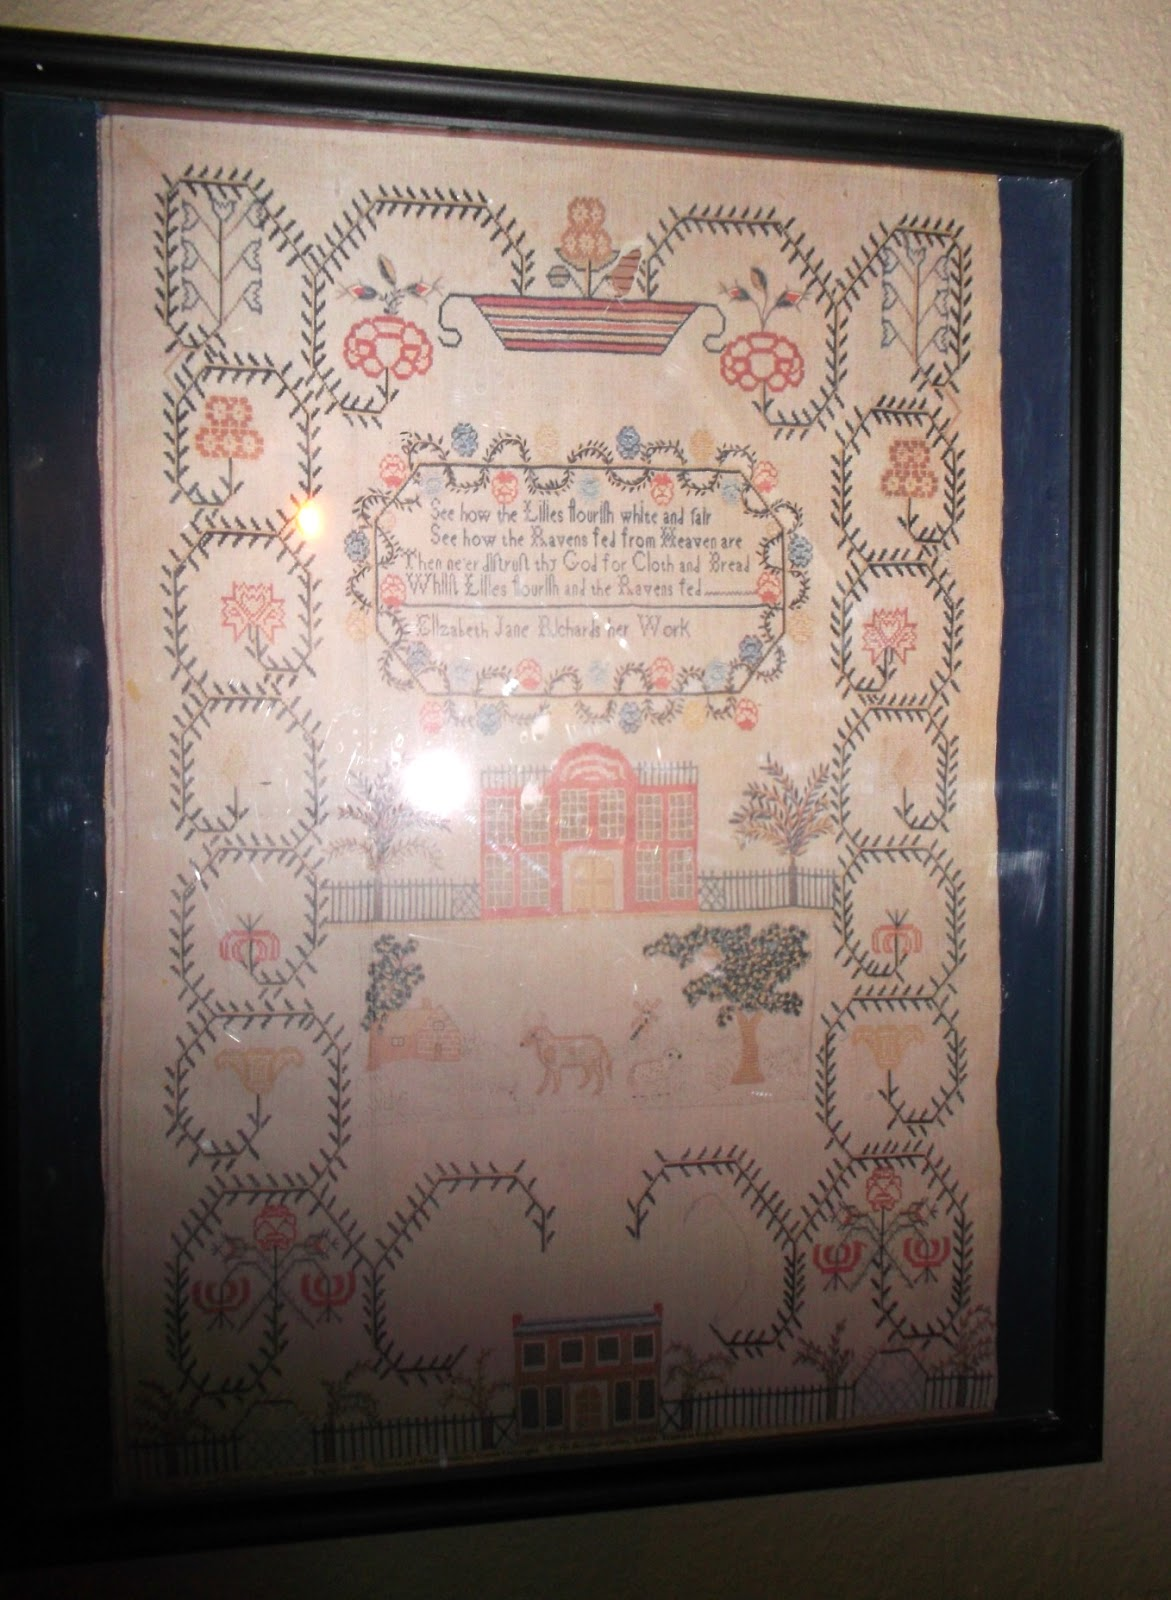 Home interiors and gifts framed art - Decorating Is In The Details Homemade Art